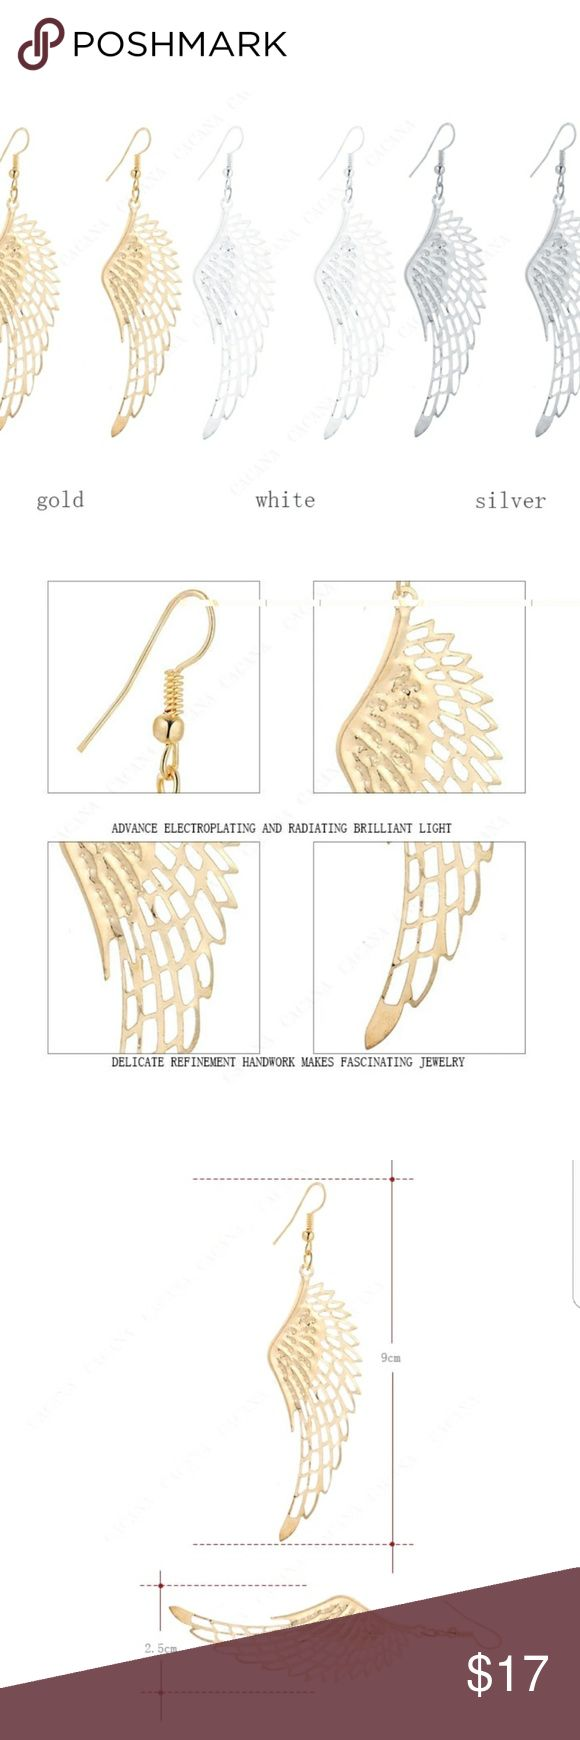 4 PAIRS FOR  $17!   EARRINGS!! 😇 ANGEL WINGS!  Earrings are not heavy so they won't make you feel weighted down & no worries about stretching out your earlobes! Earrings are thin, lightweight Alloy metal. They are priced great! Bundle & save on shipping! Choose Gold or Silver in Options. Once you add 4 pairs to your bundle, submit offer for $17 & it will be accepted! Gold stock# 112 Silver Stock # 212 Jewelry Earrings